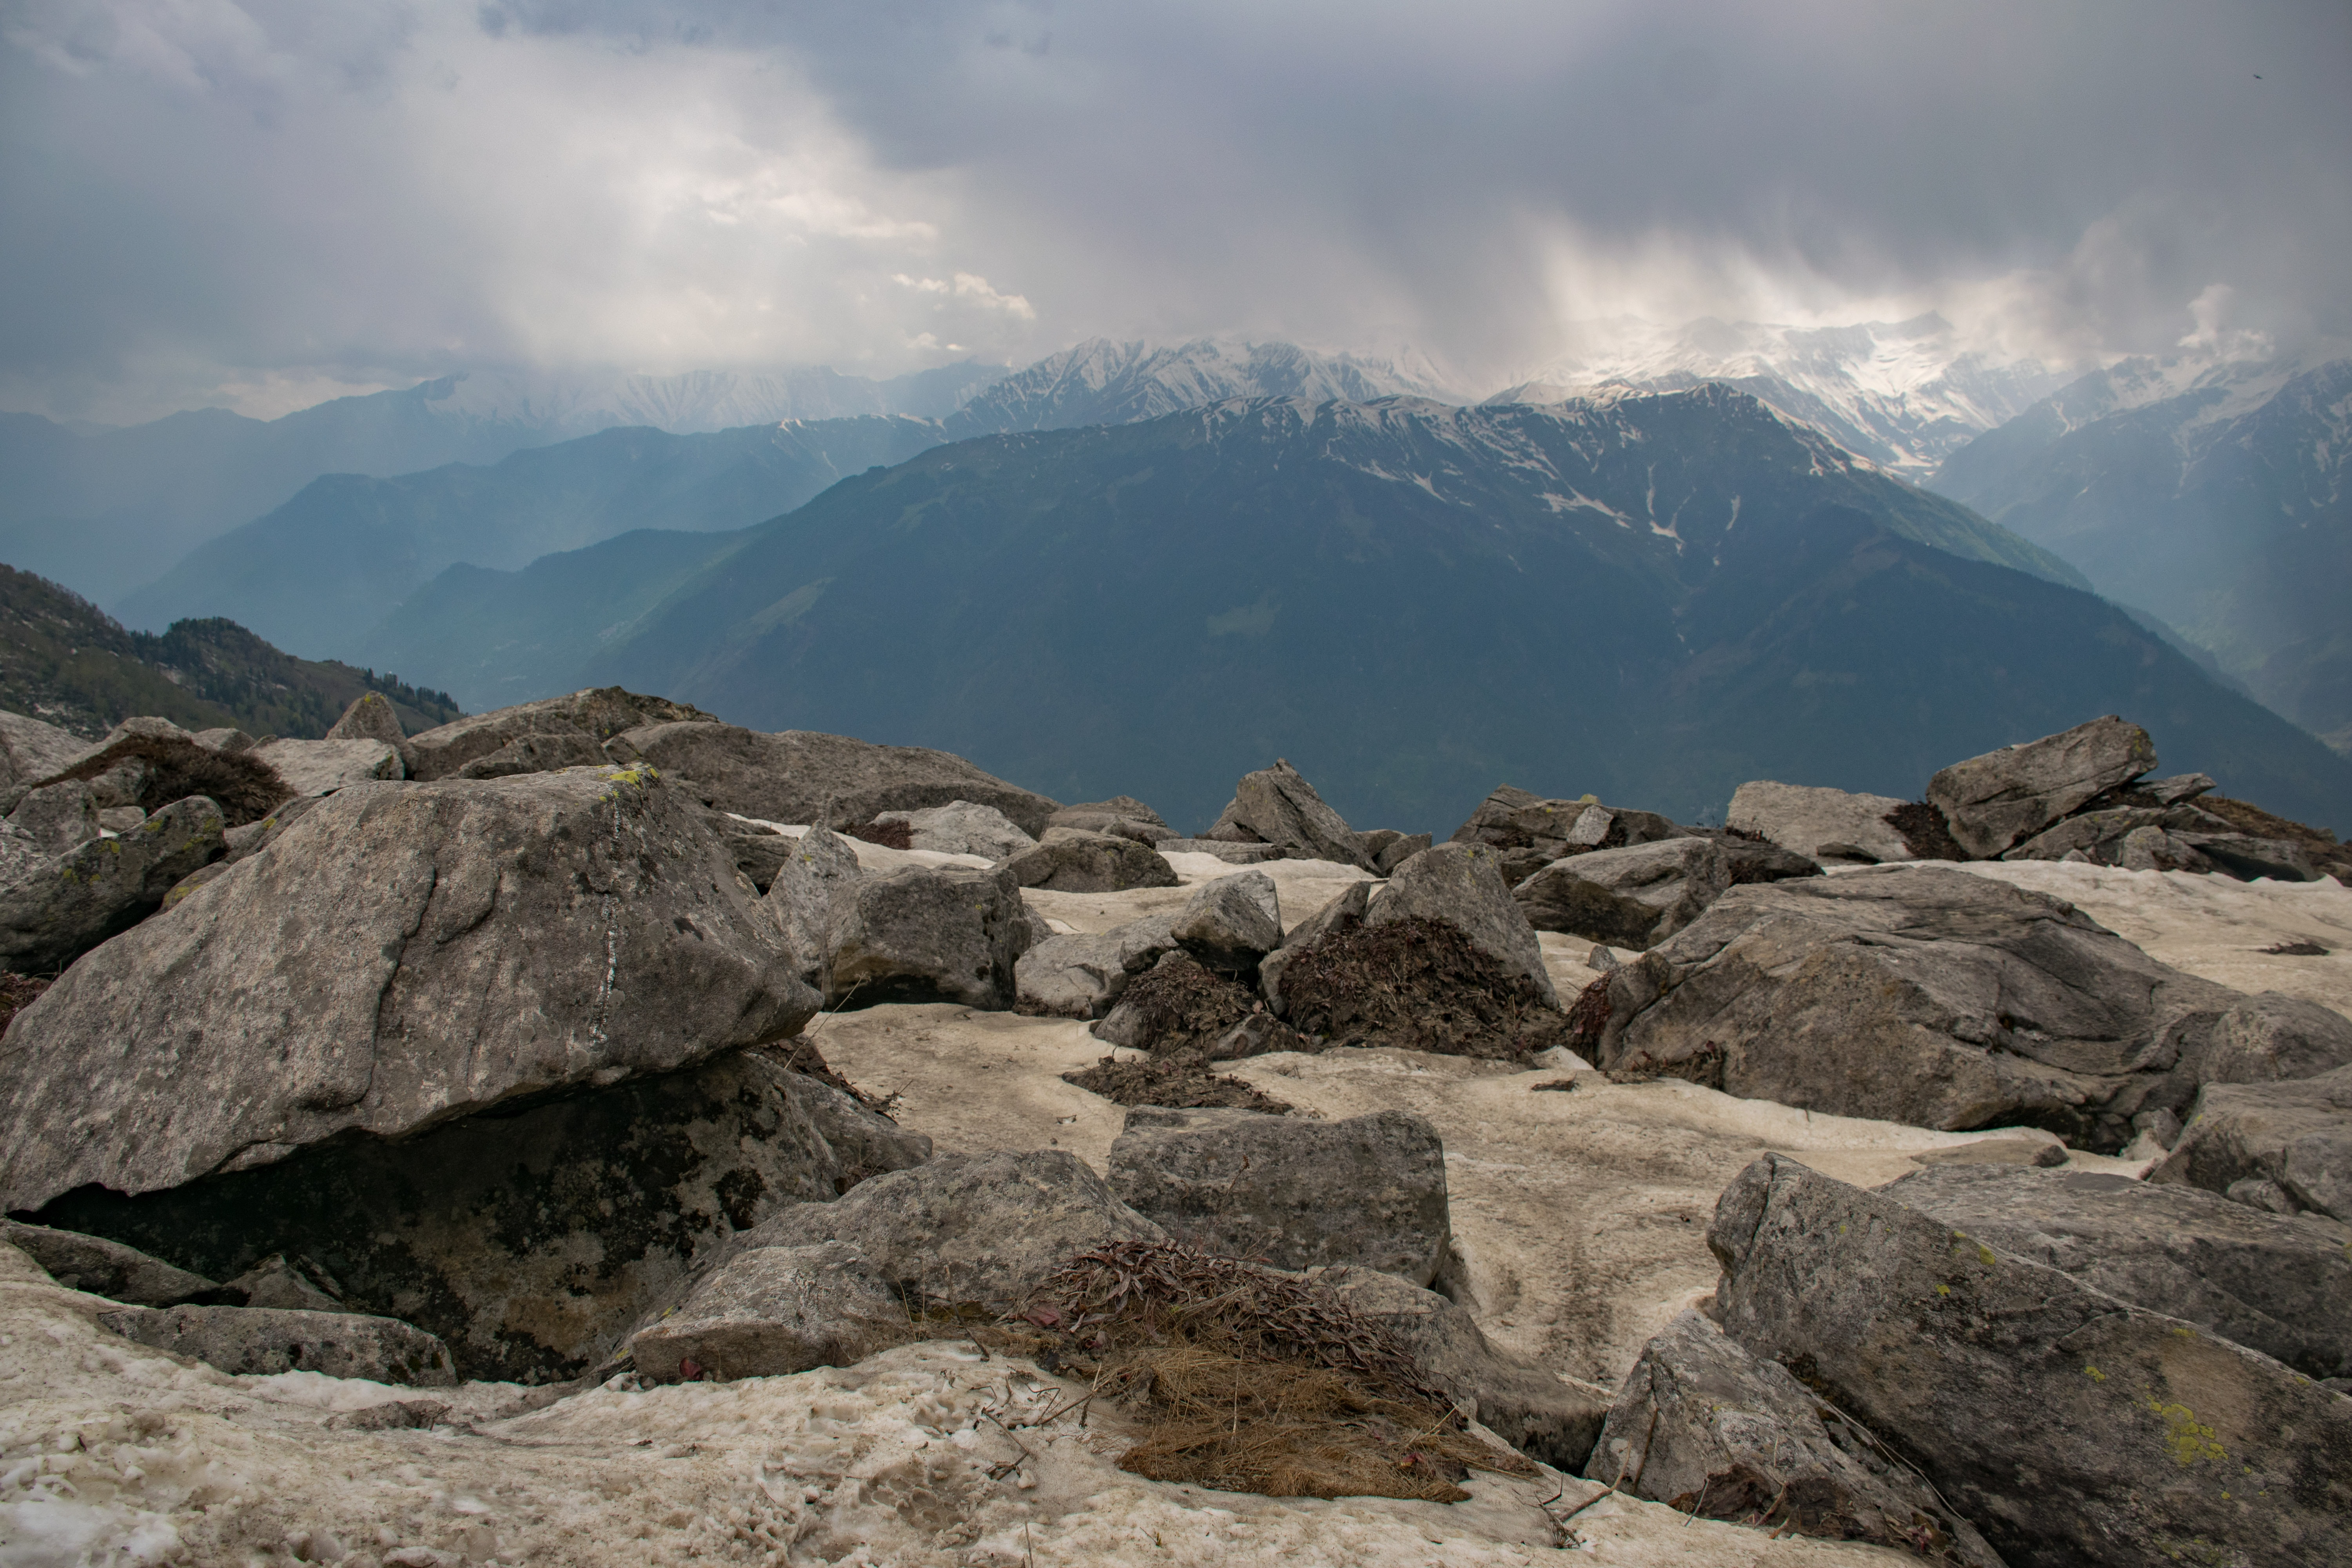 Gray Rocks in Front of Mountain, Nature, Winter, Snow, Sky, HQ Photo